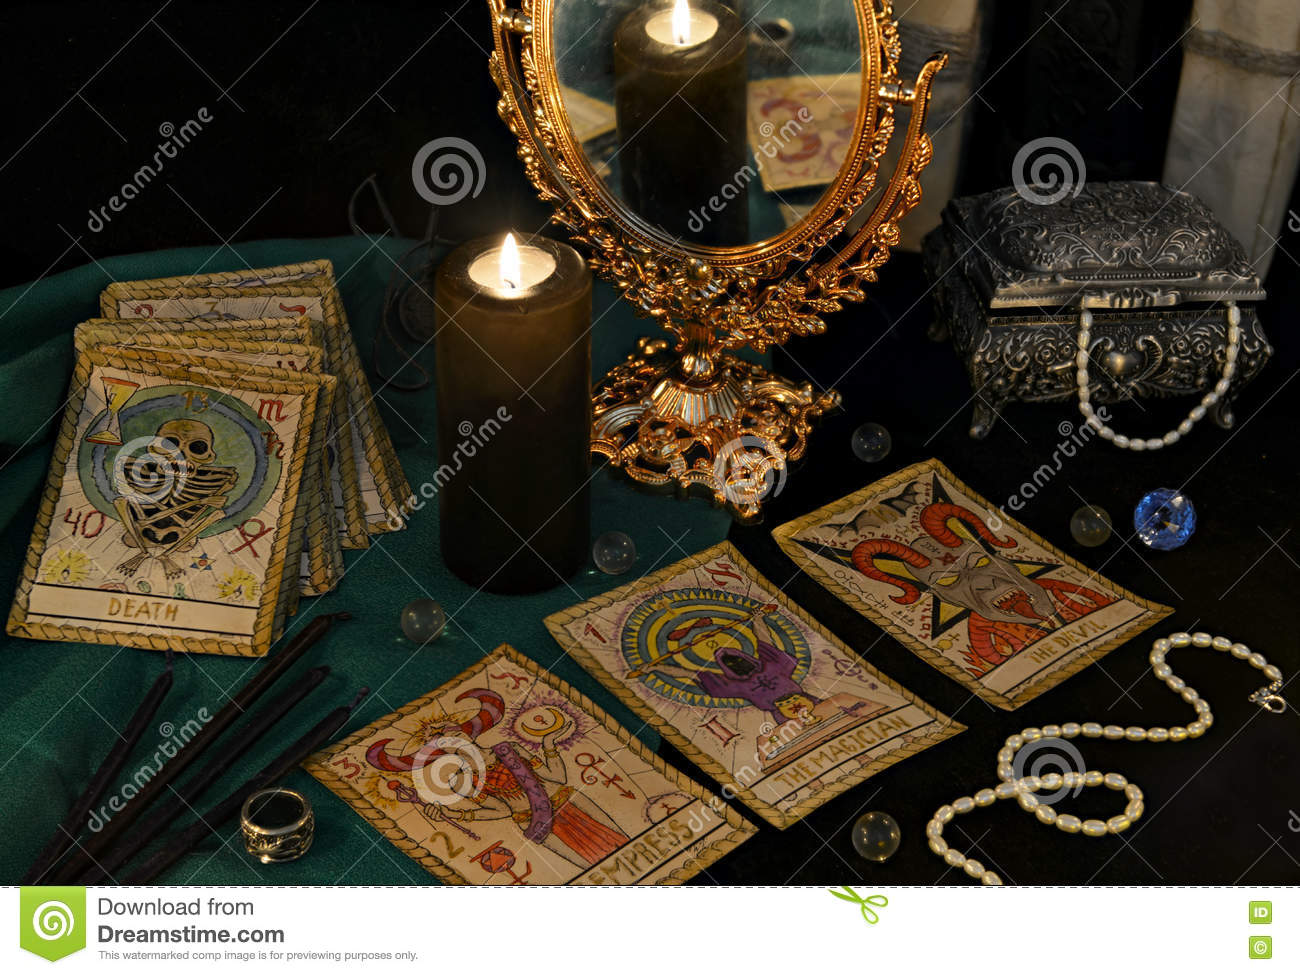 Esoteric still life with the Tarrot cards, mirrow and crystals